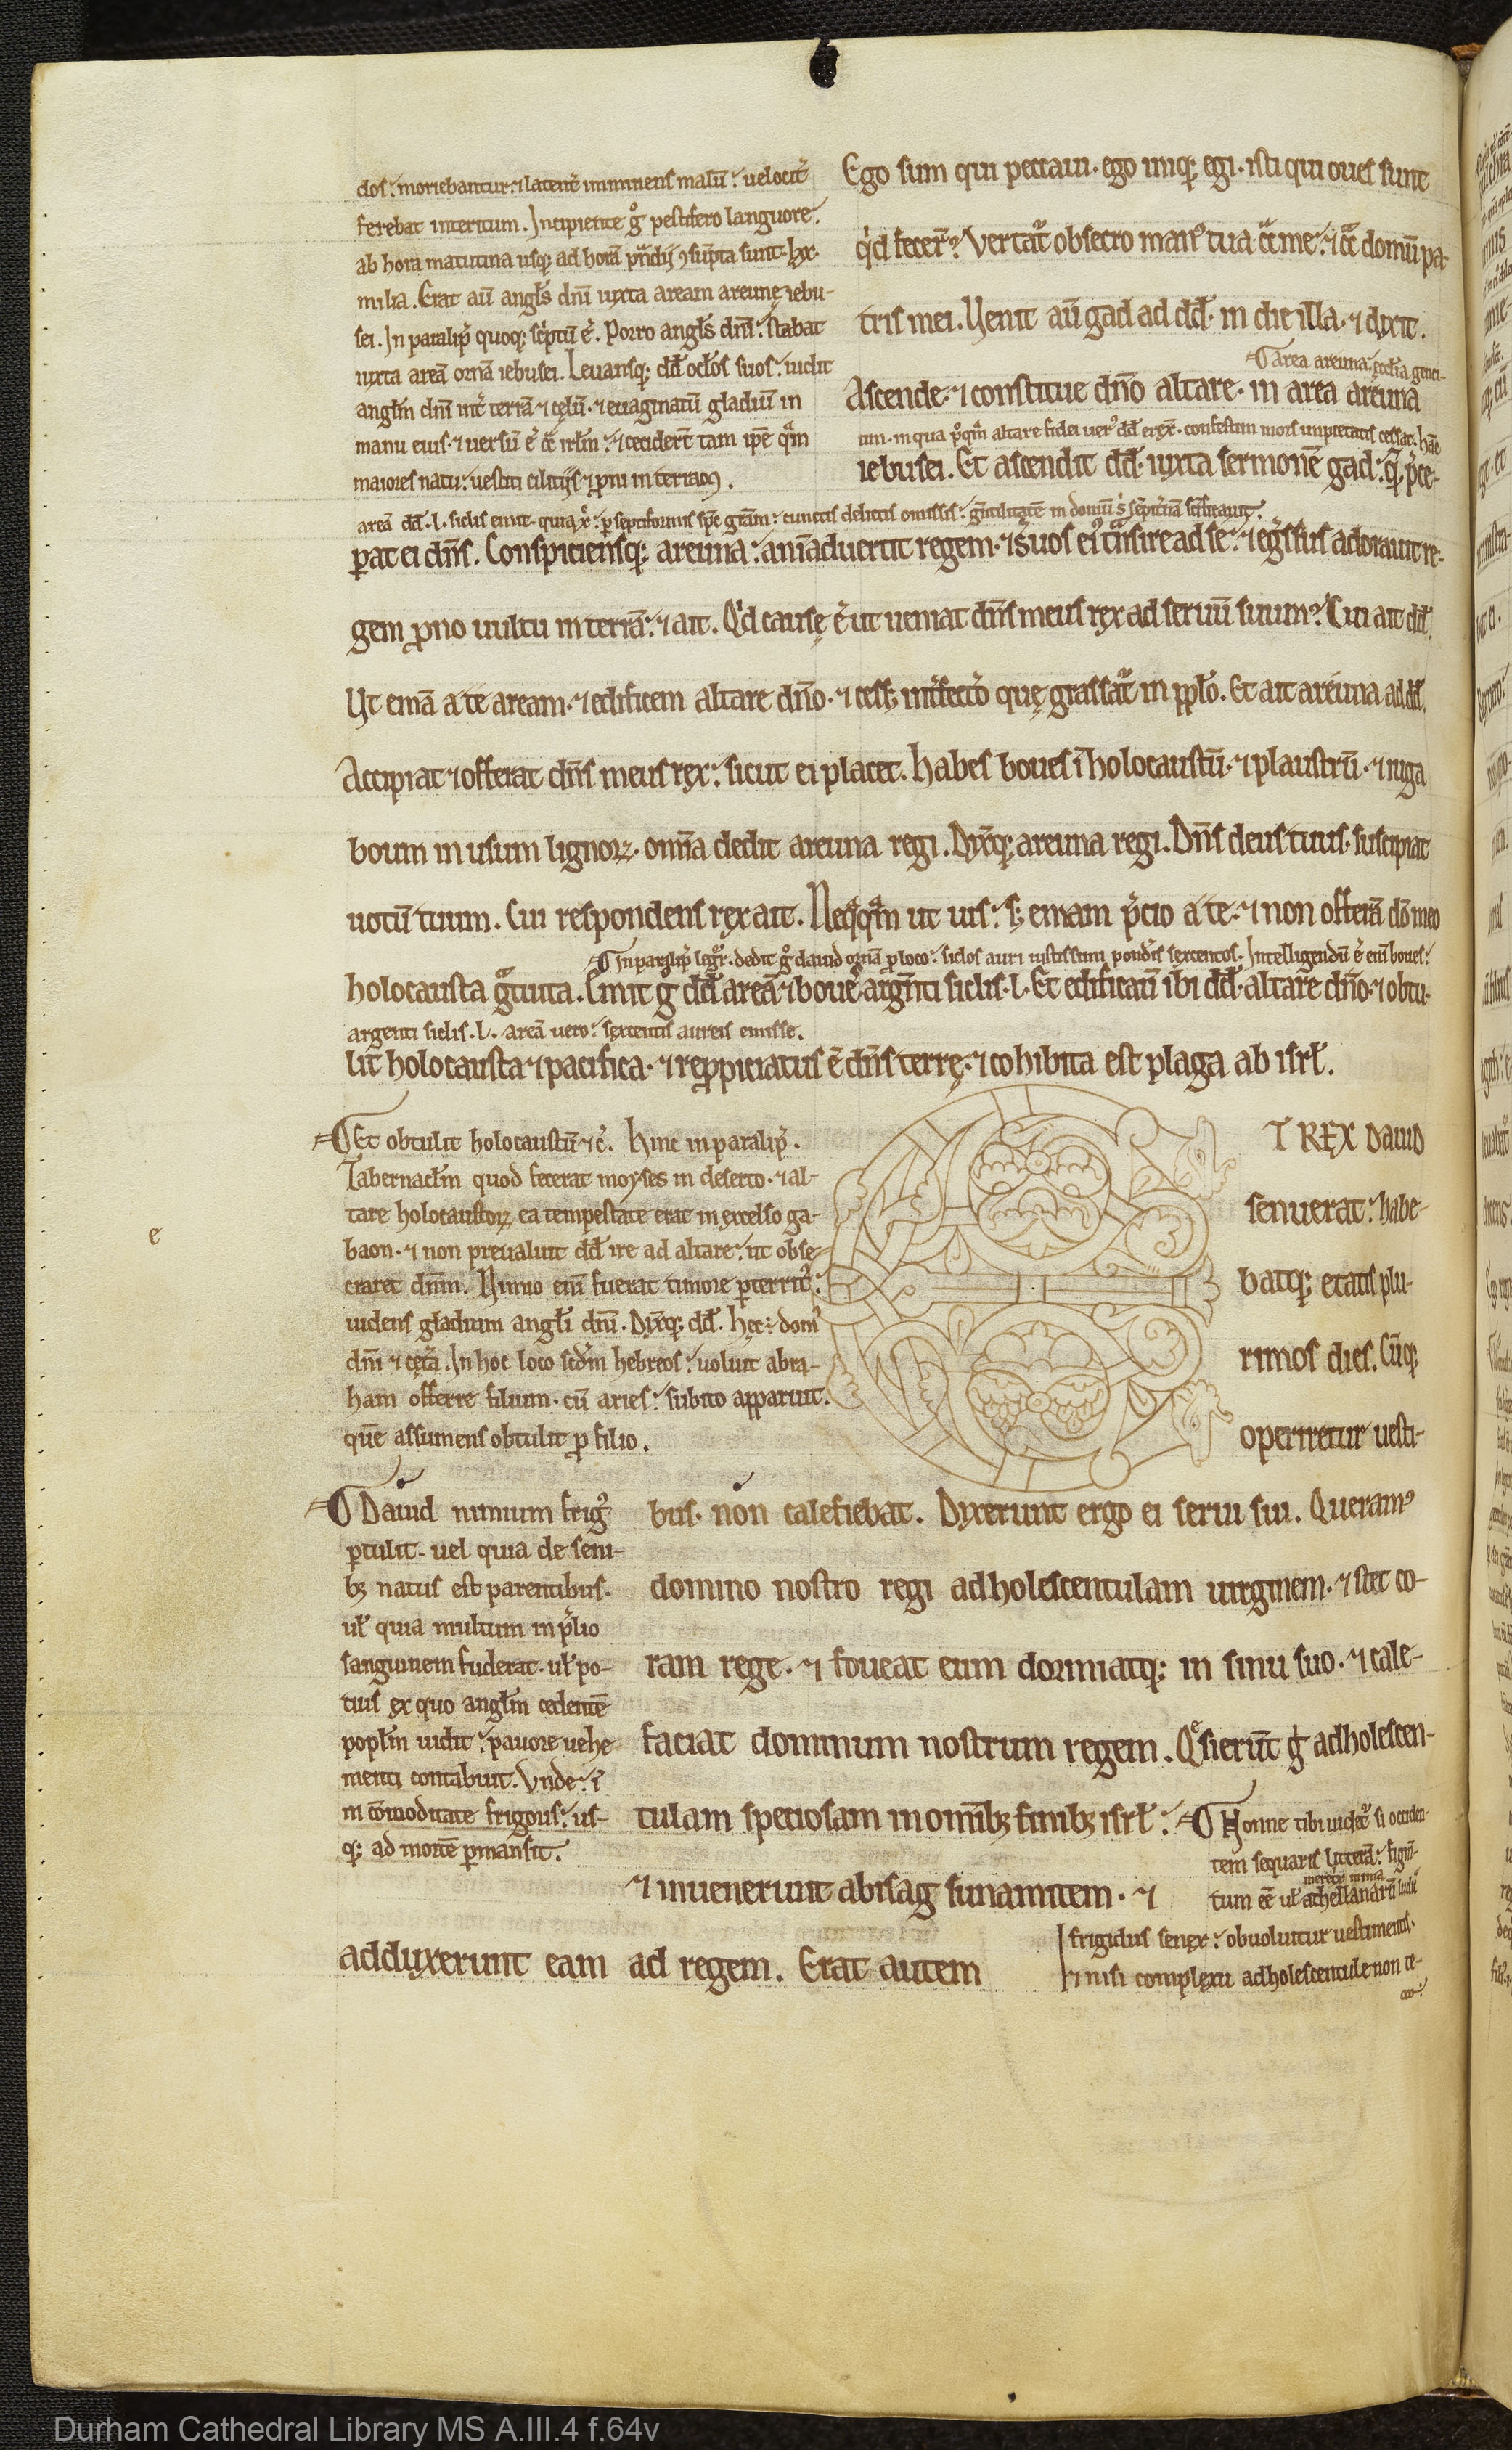 Durham Cathedral Library MS A.III.4 f.64v full page, A4